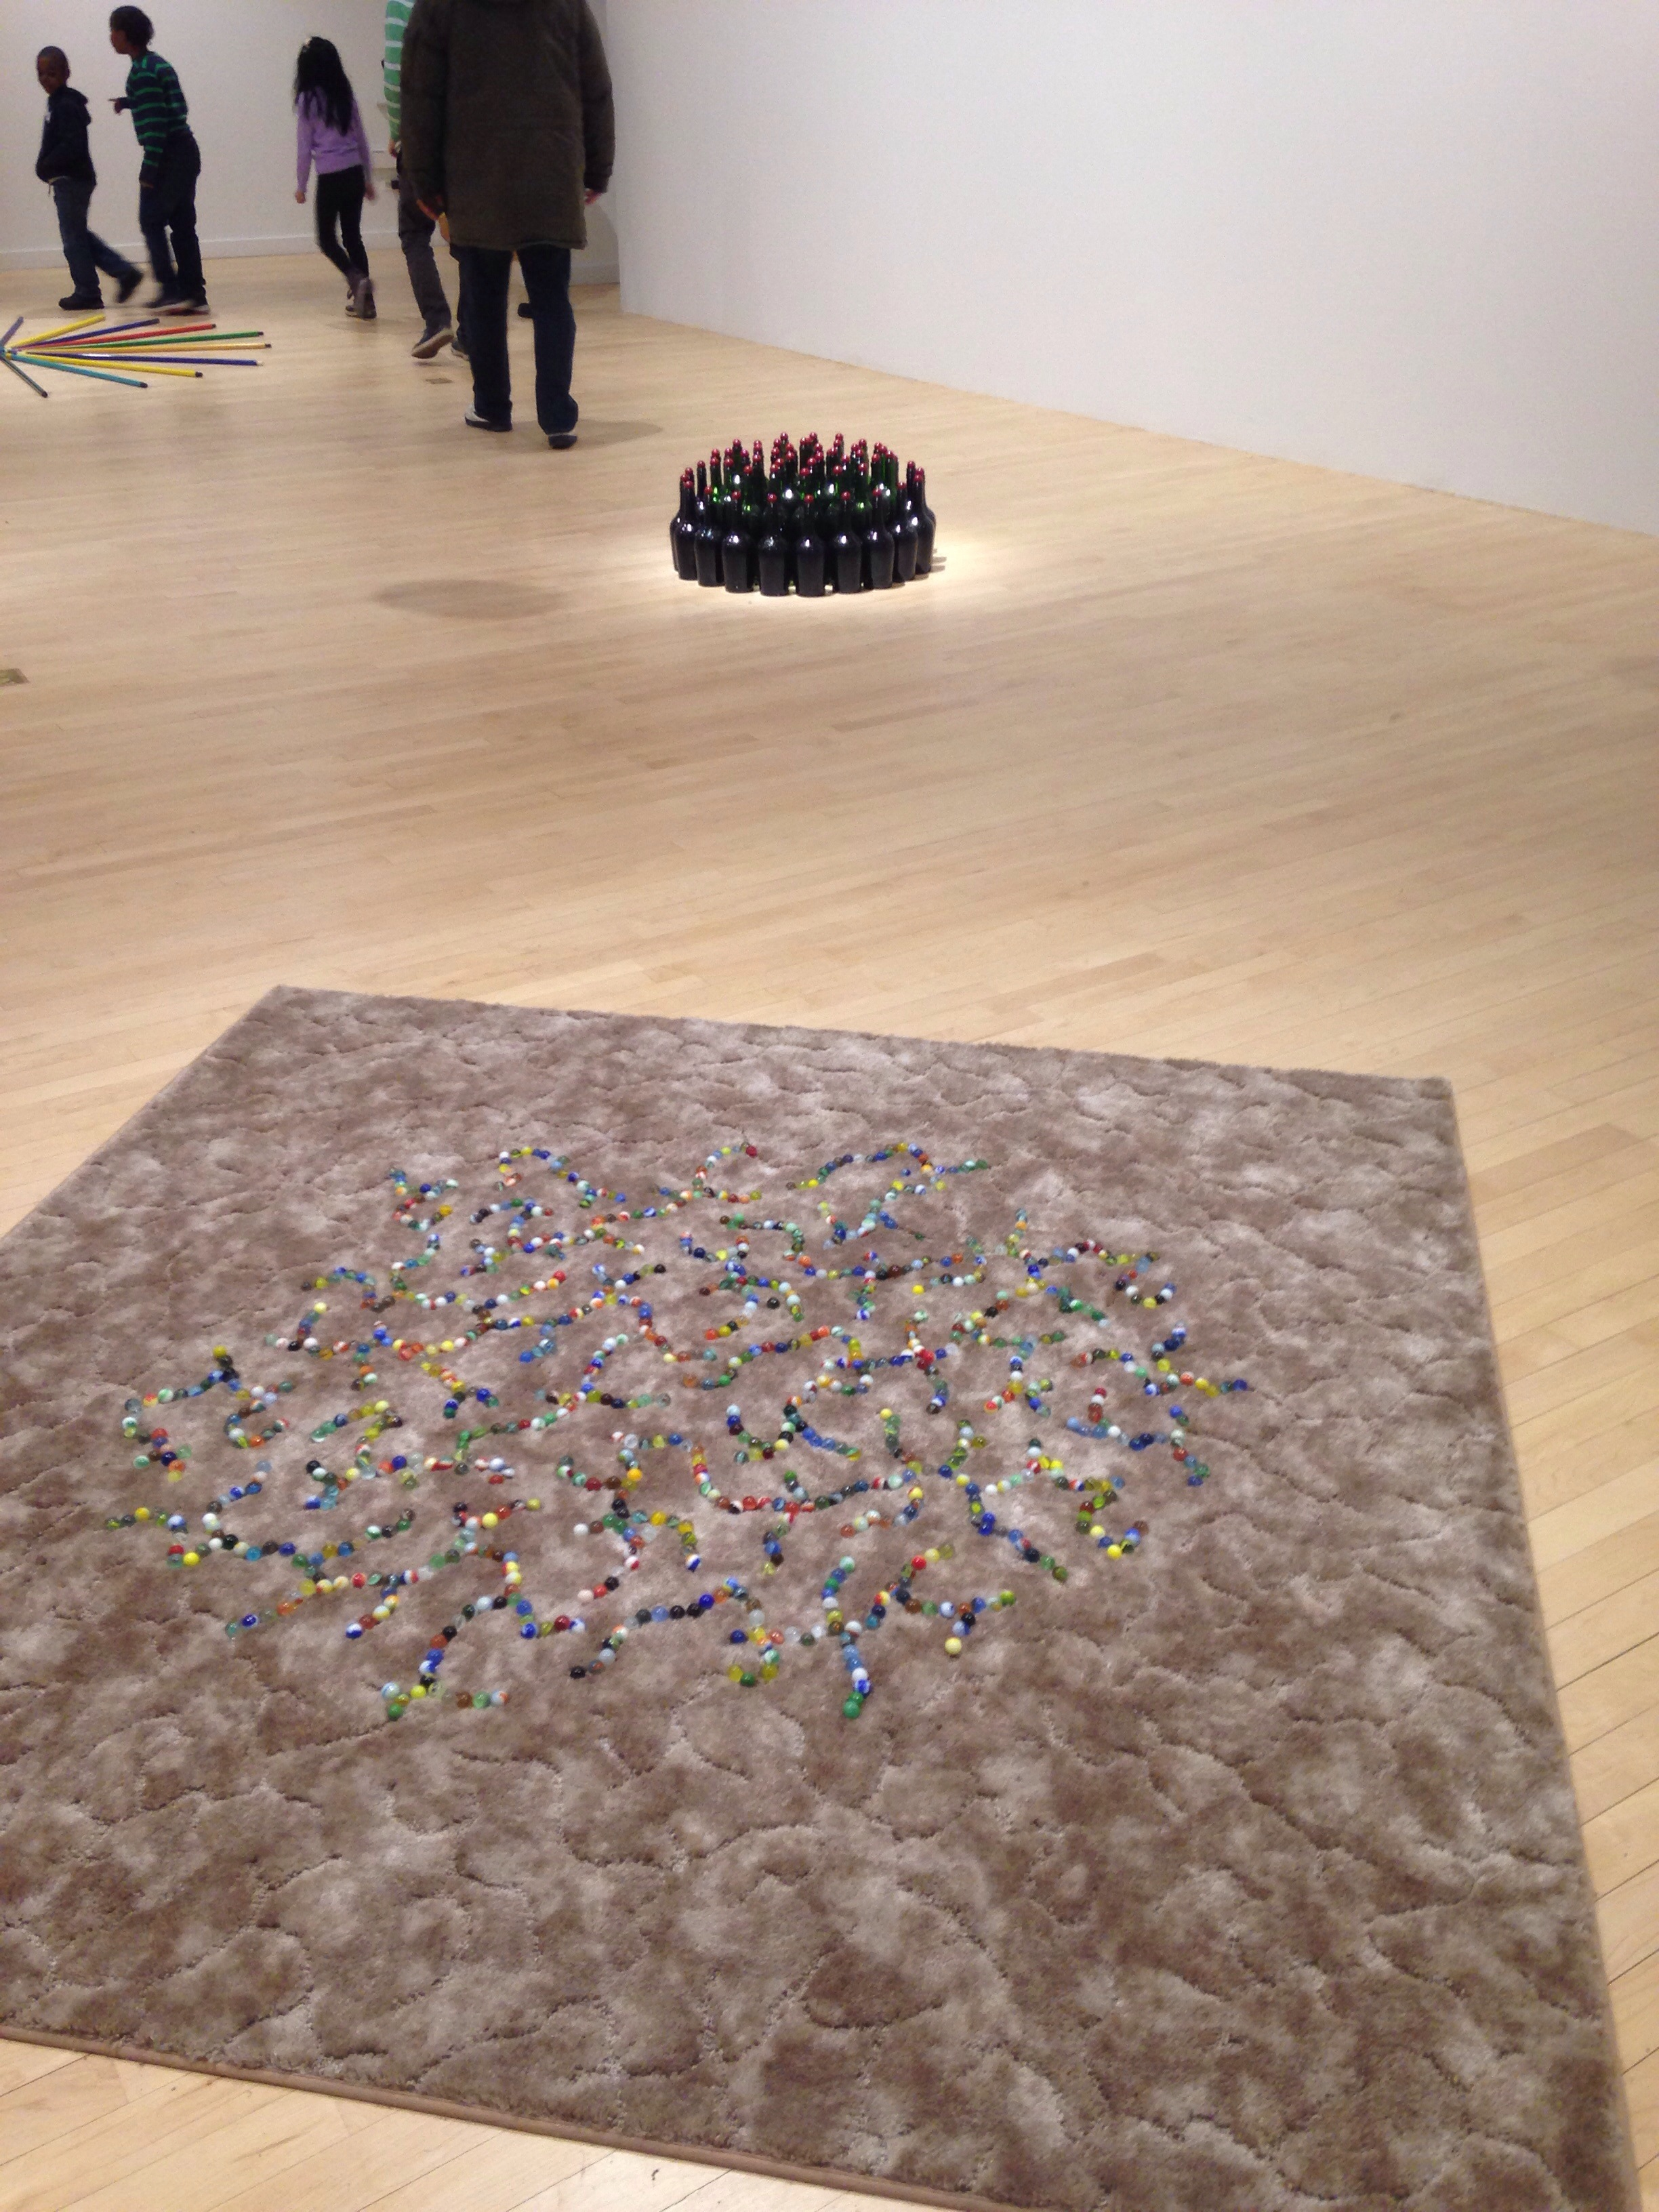 A plush carpet with marbles set in pattern.